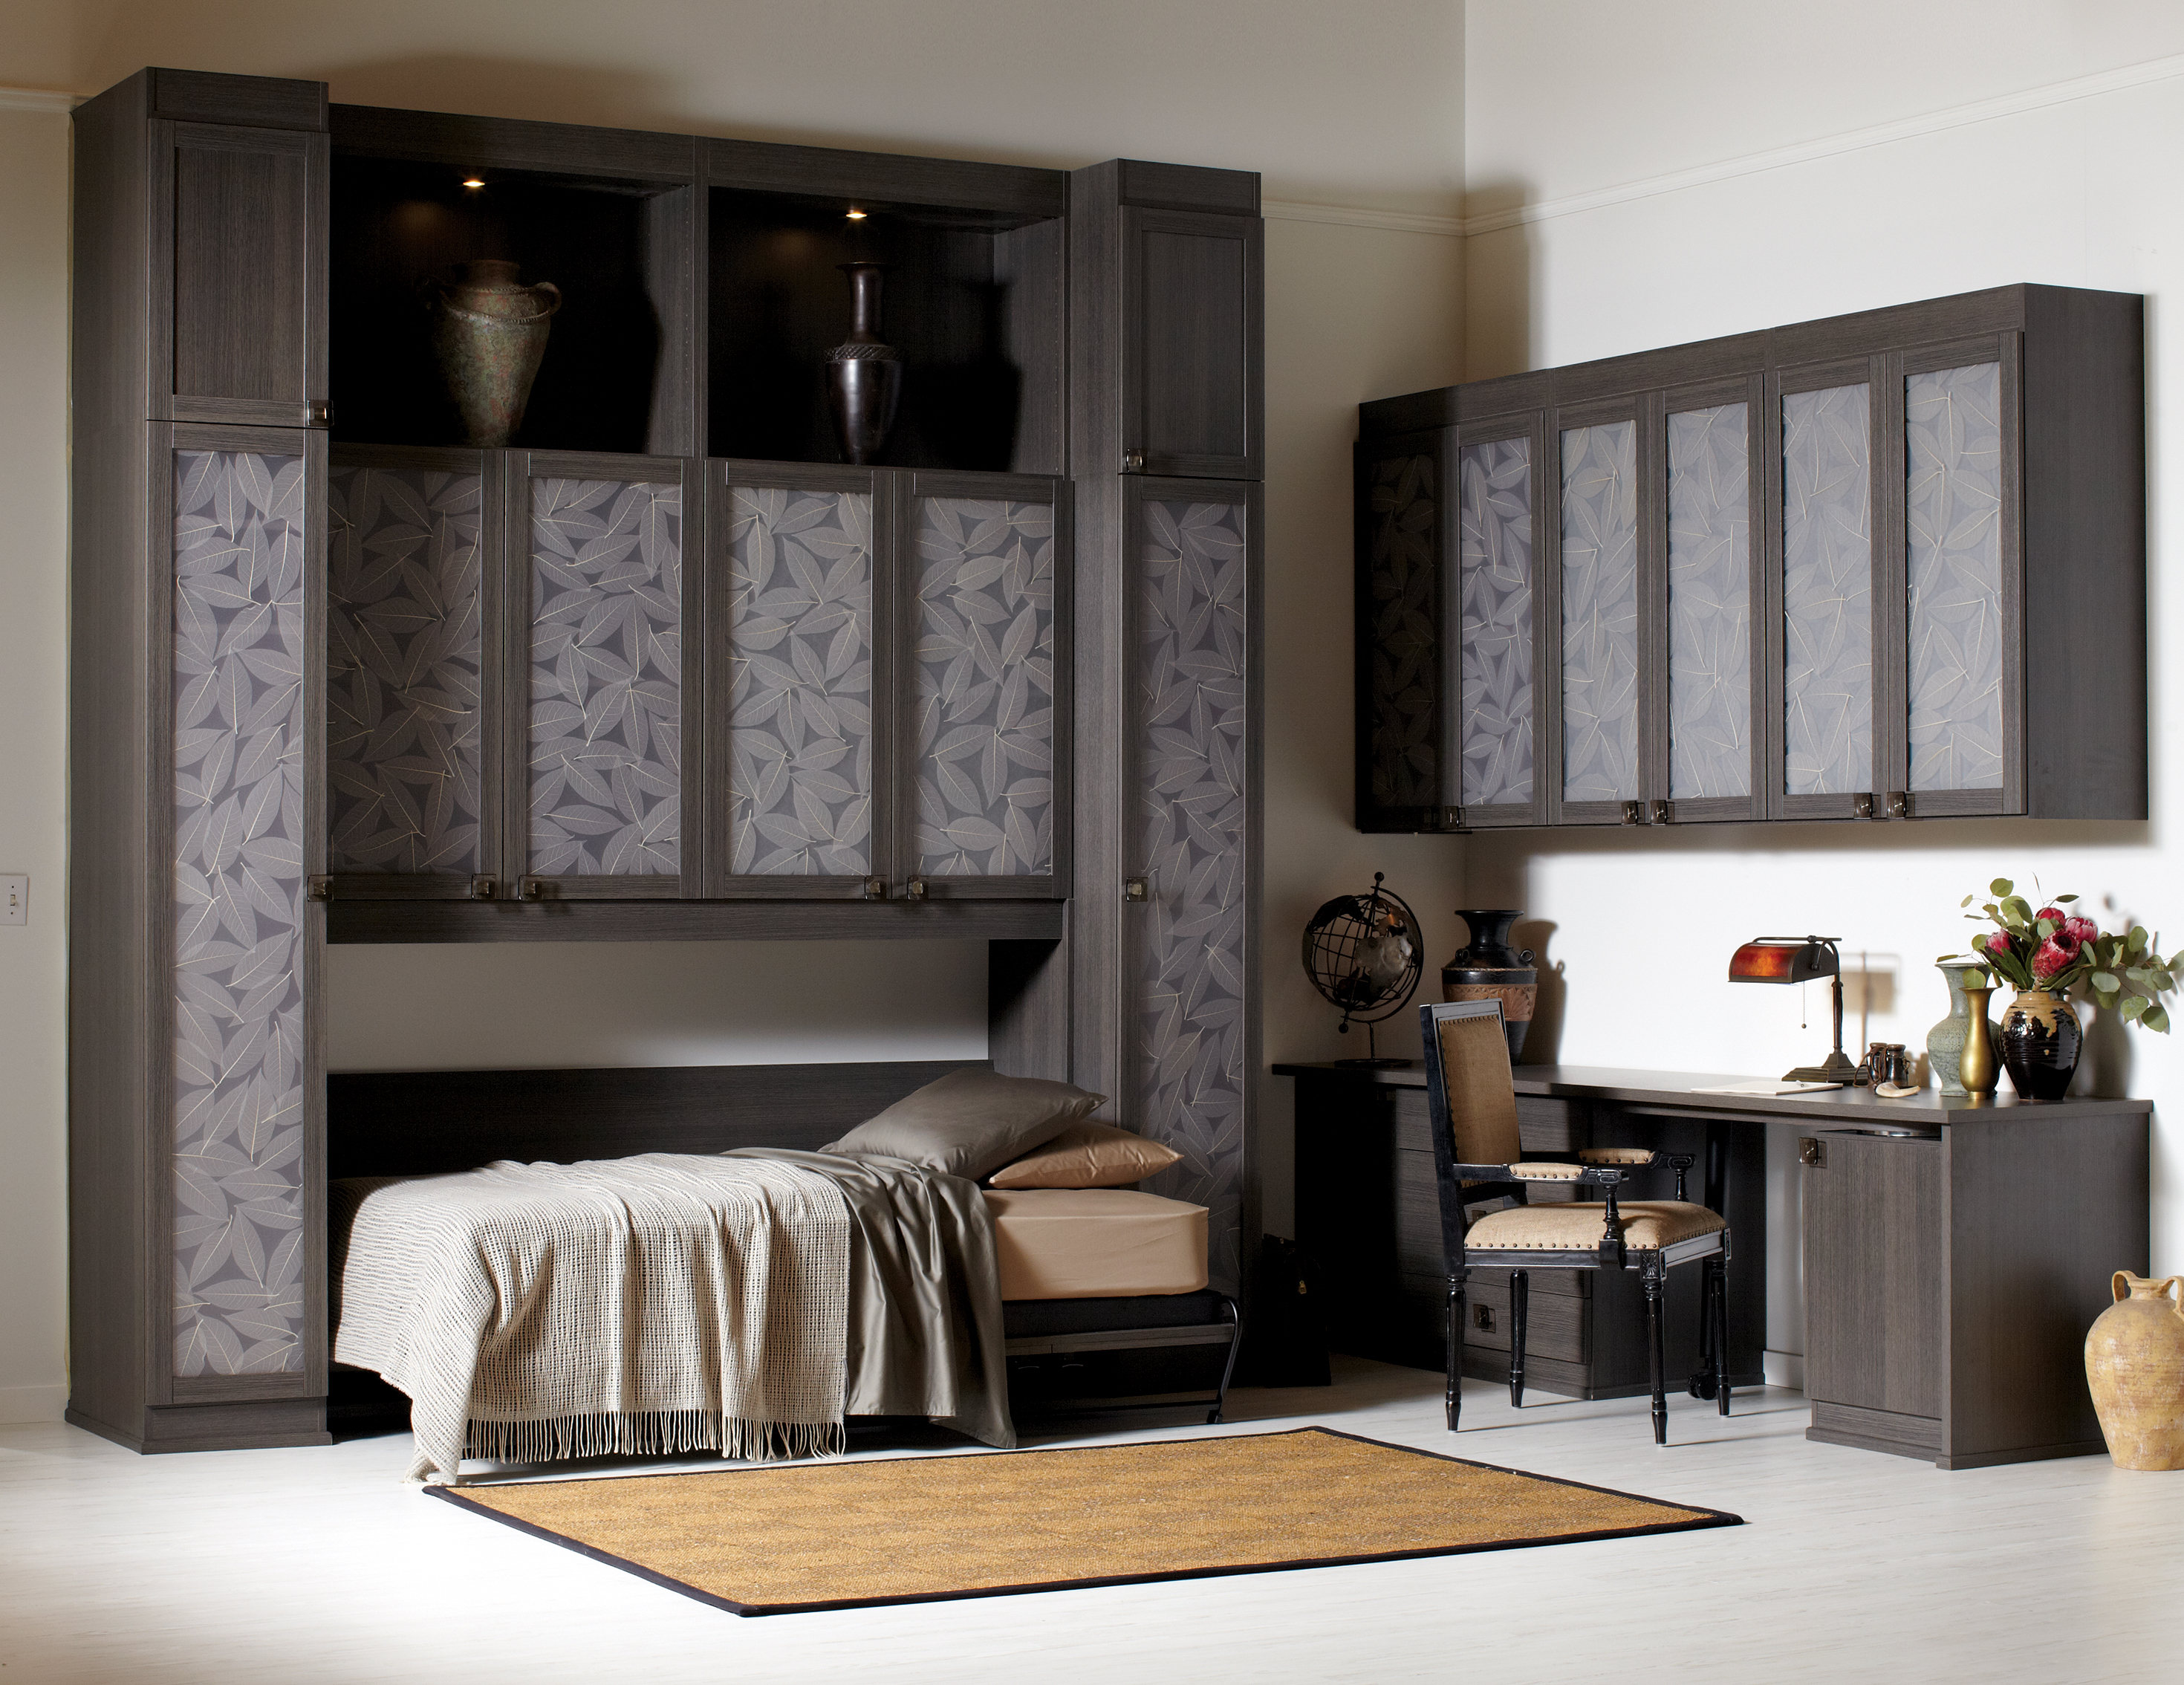 California Closets Monterey - Space Saving Solutions with Custom Cabinets